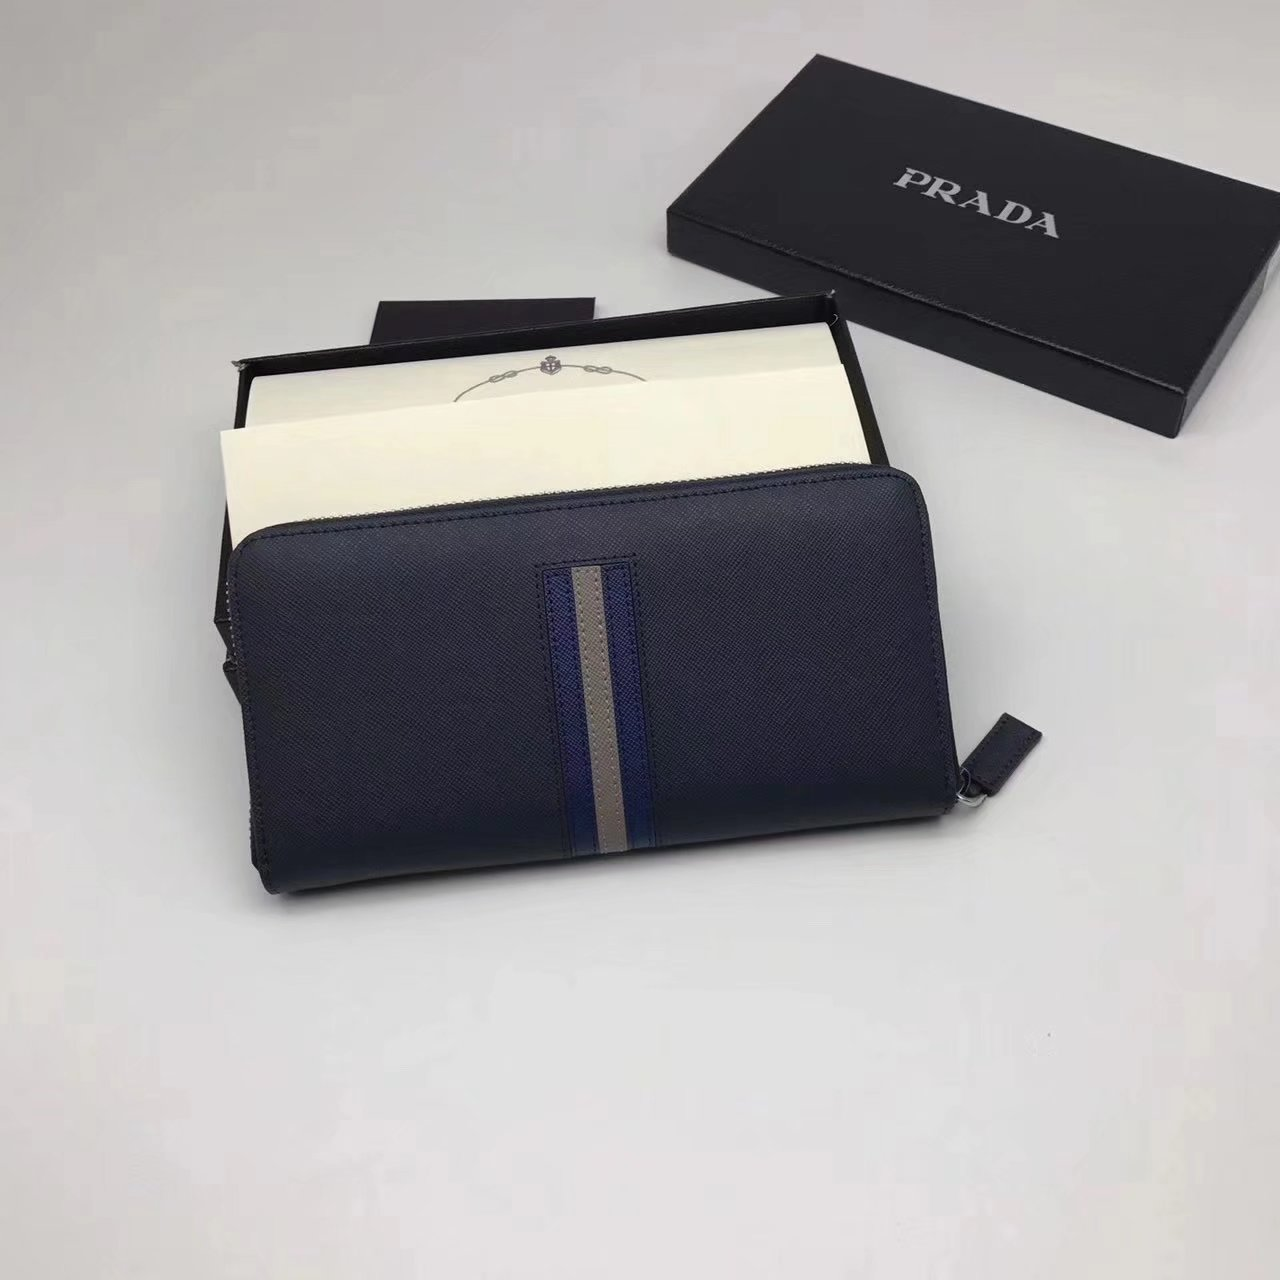 Prada 2M1317 Men Document Holder Saffiano Leather Long Wallet Blue